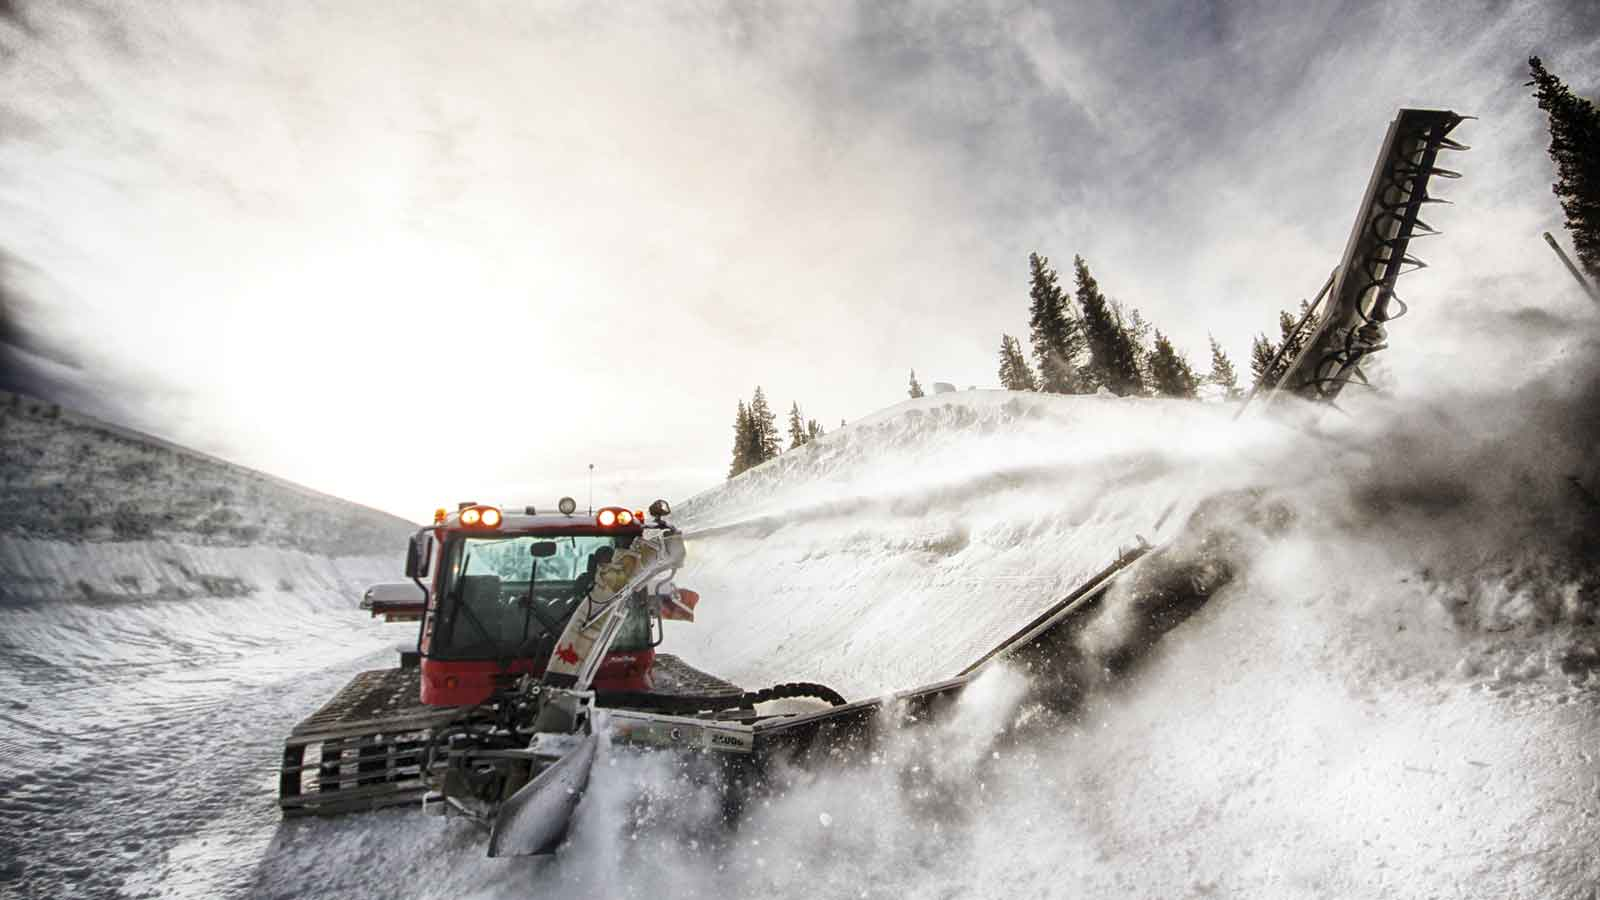 The Zaugg pipe monster is the machine used to rough carve the super-pipe at Colorado's Copper Mountain.